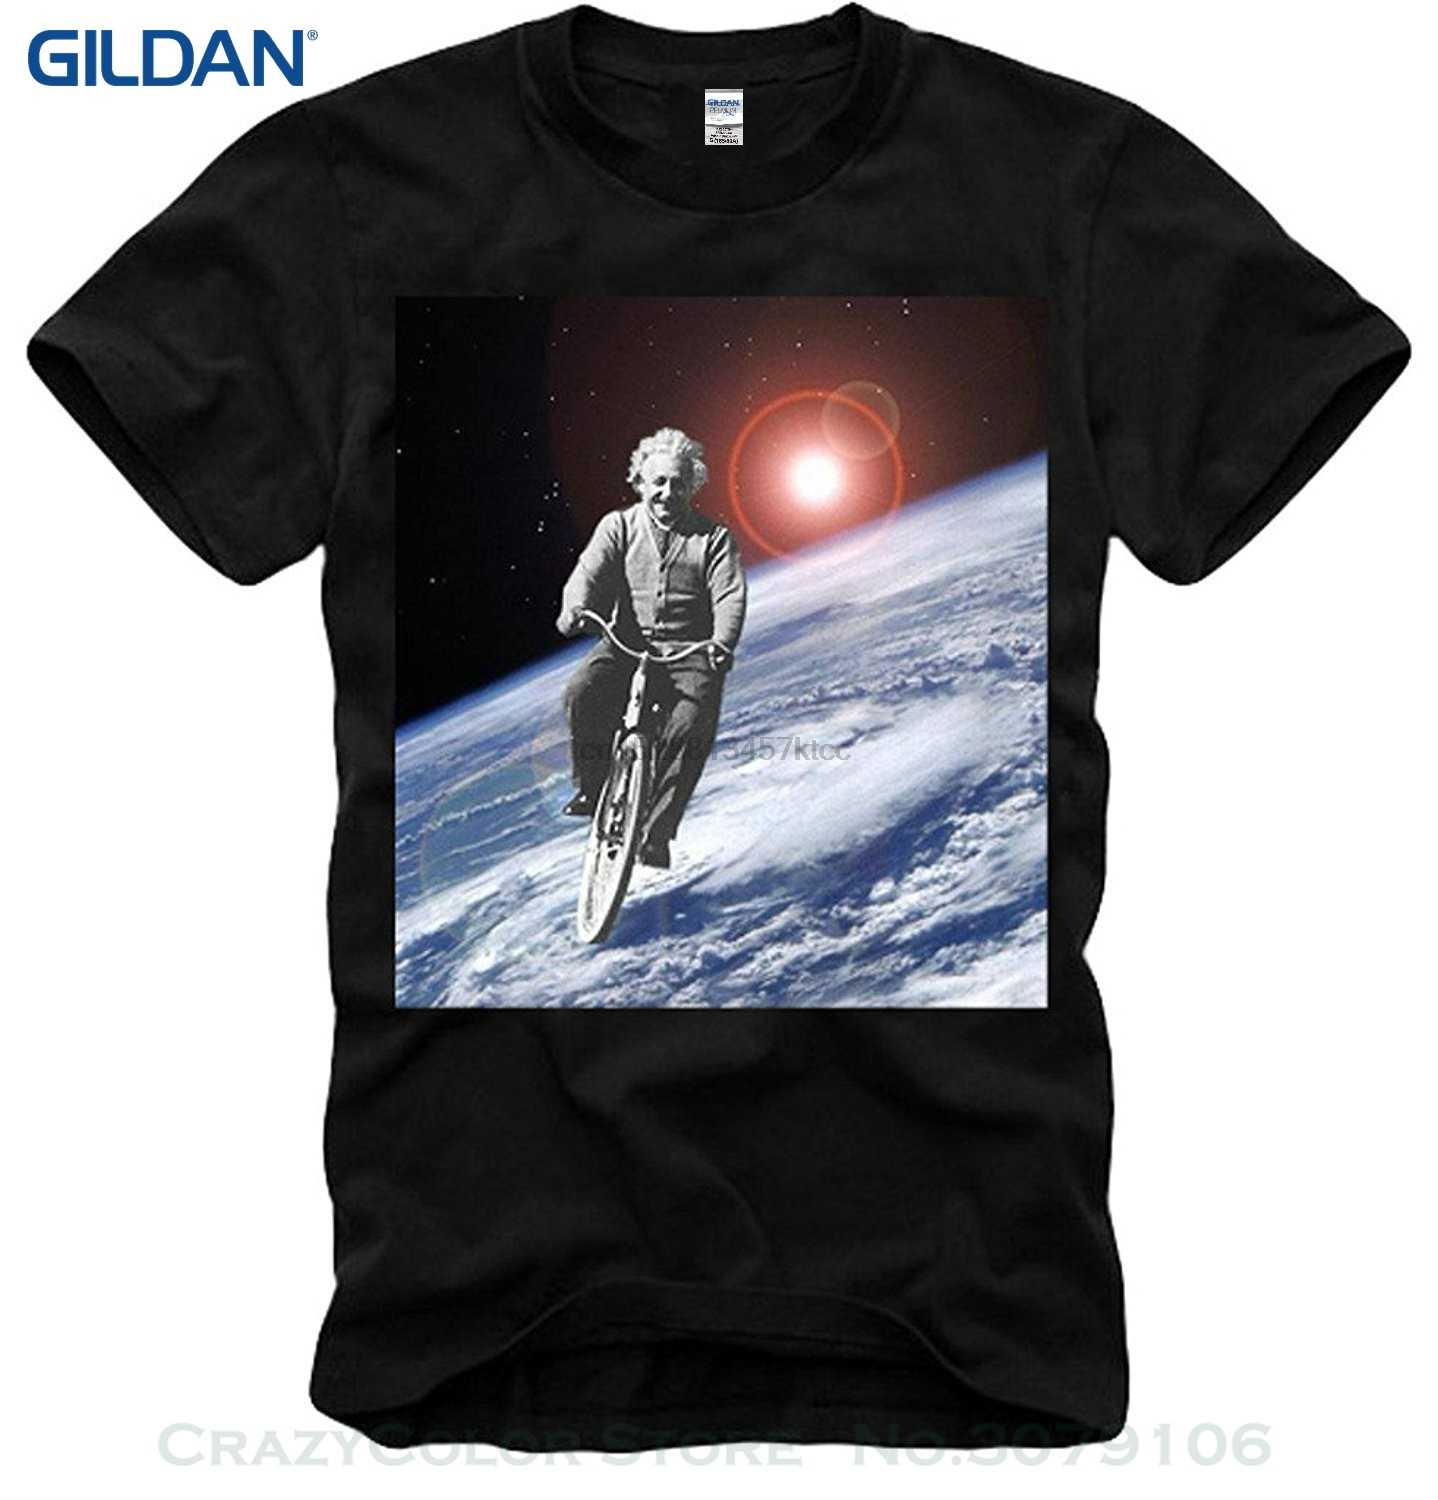 Retro 100% Cotton Print Shirt Tee T-shirt Albert Einstein Space Ride E=mc2 Physics Nobel Prize Black S m l xl